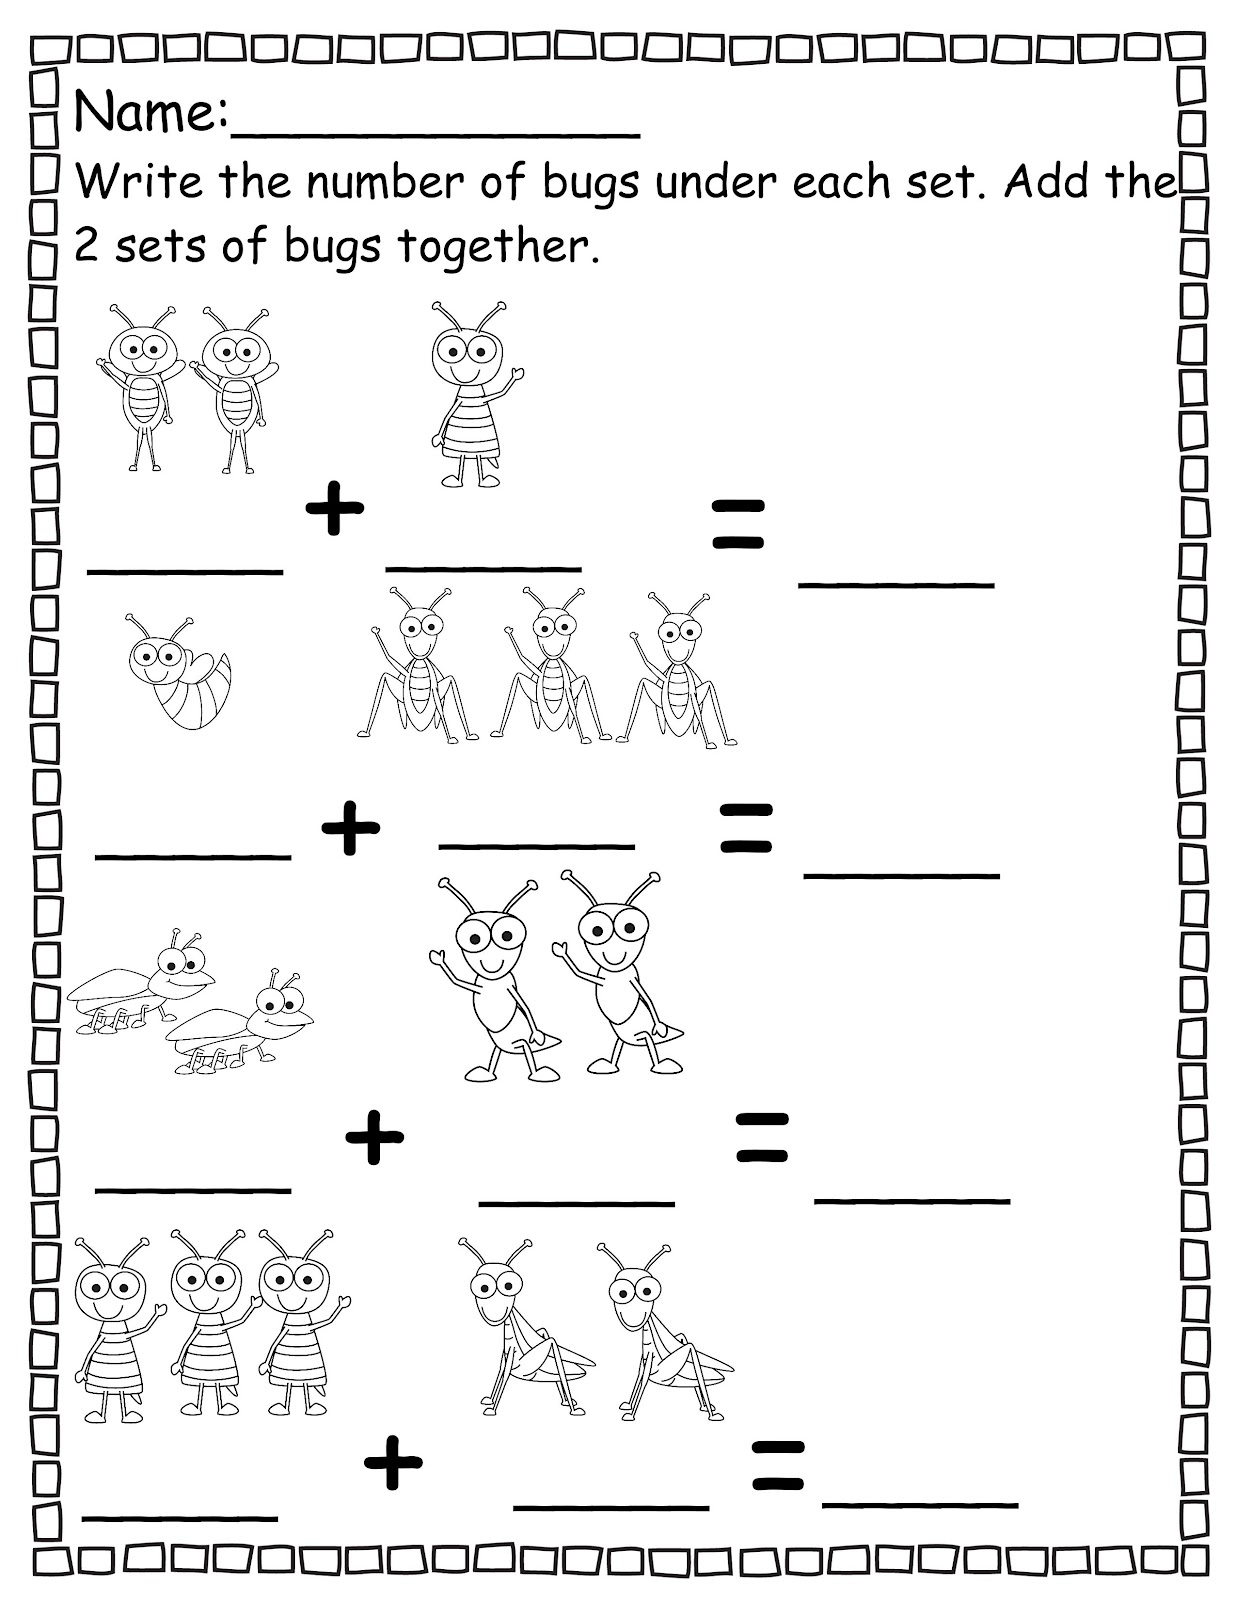 Free Pre K Printables Worksheet - Samsungblueearth